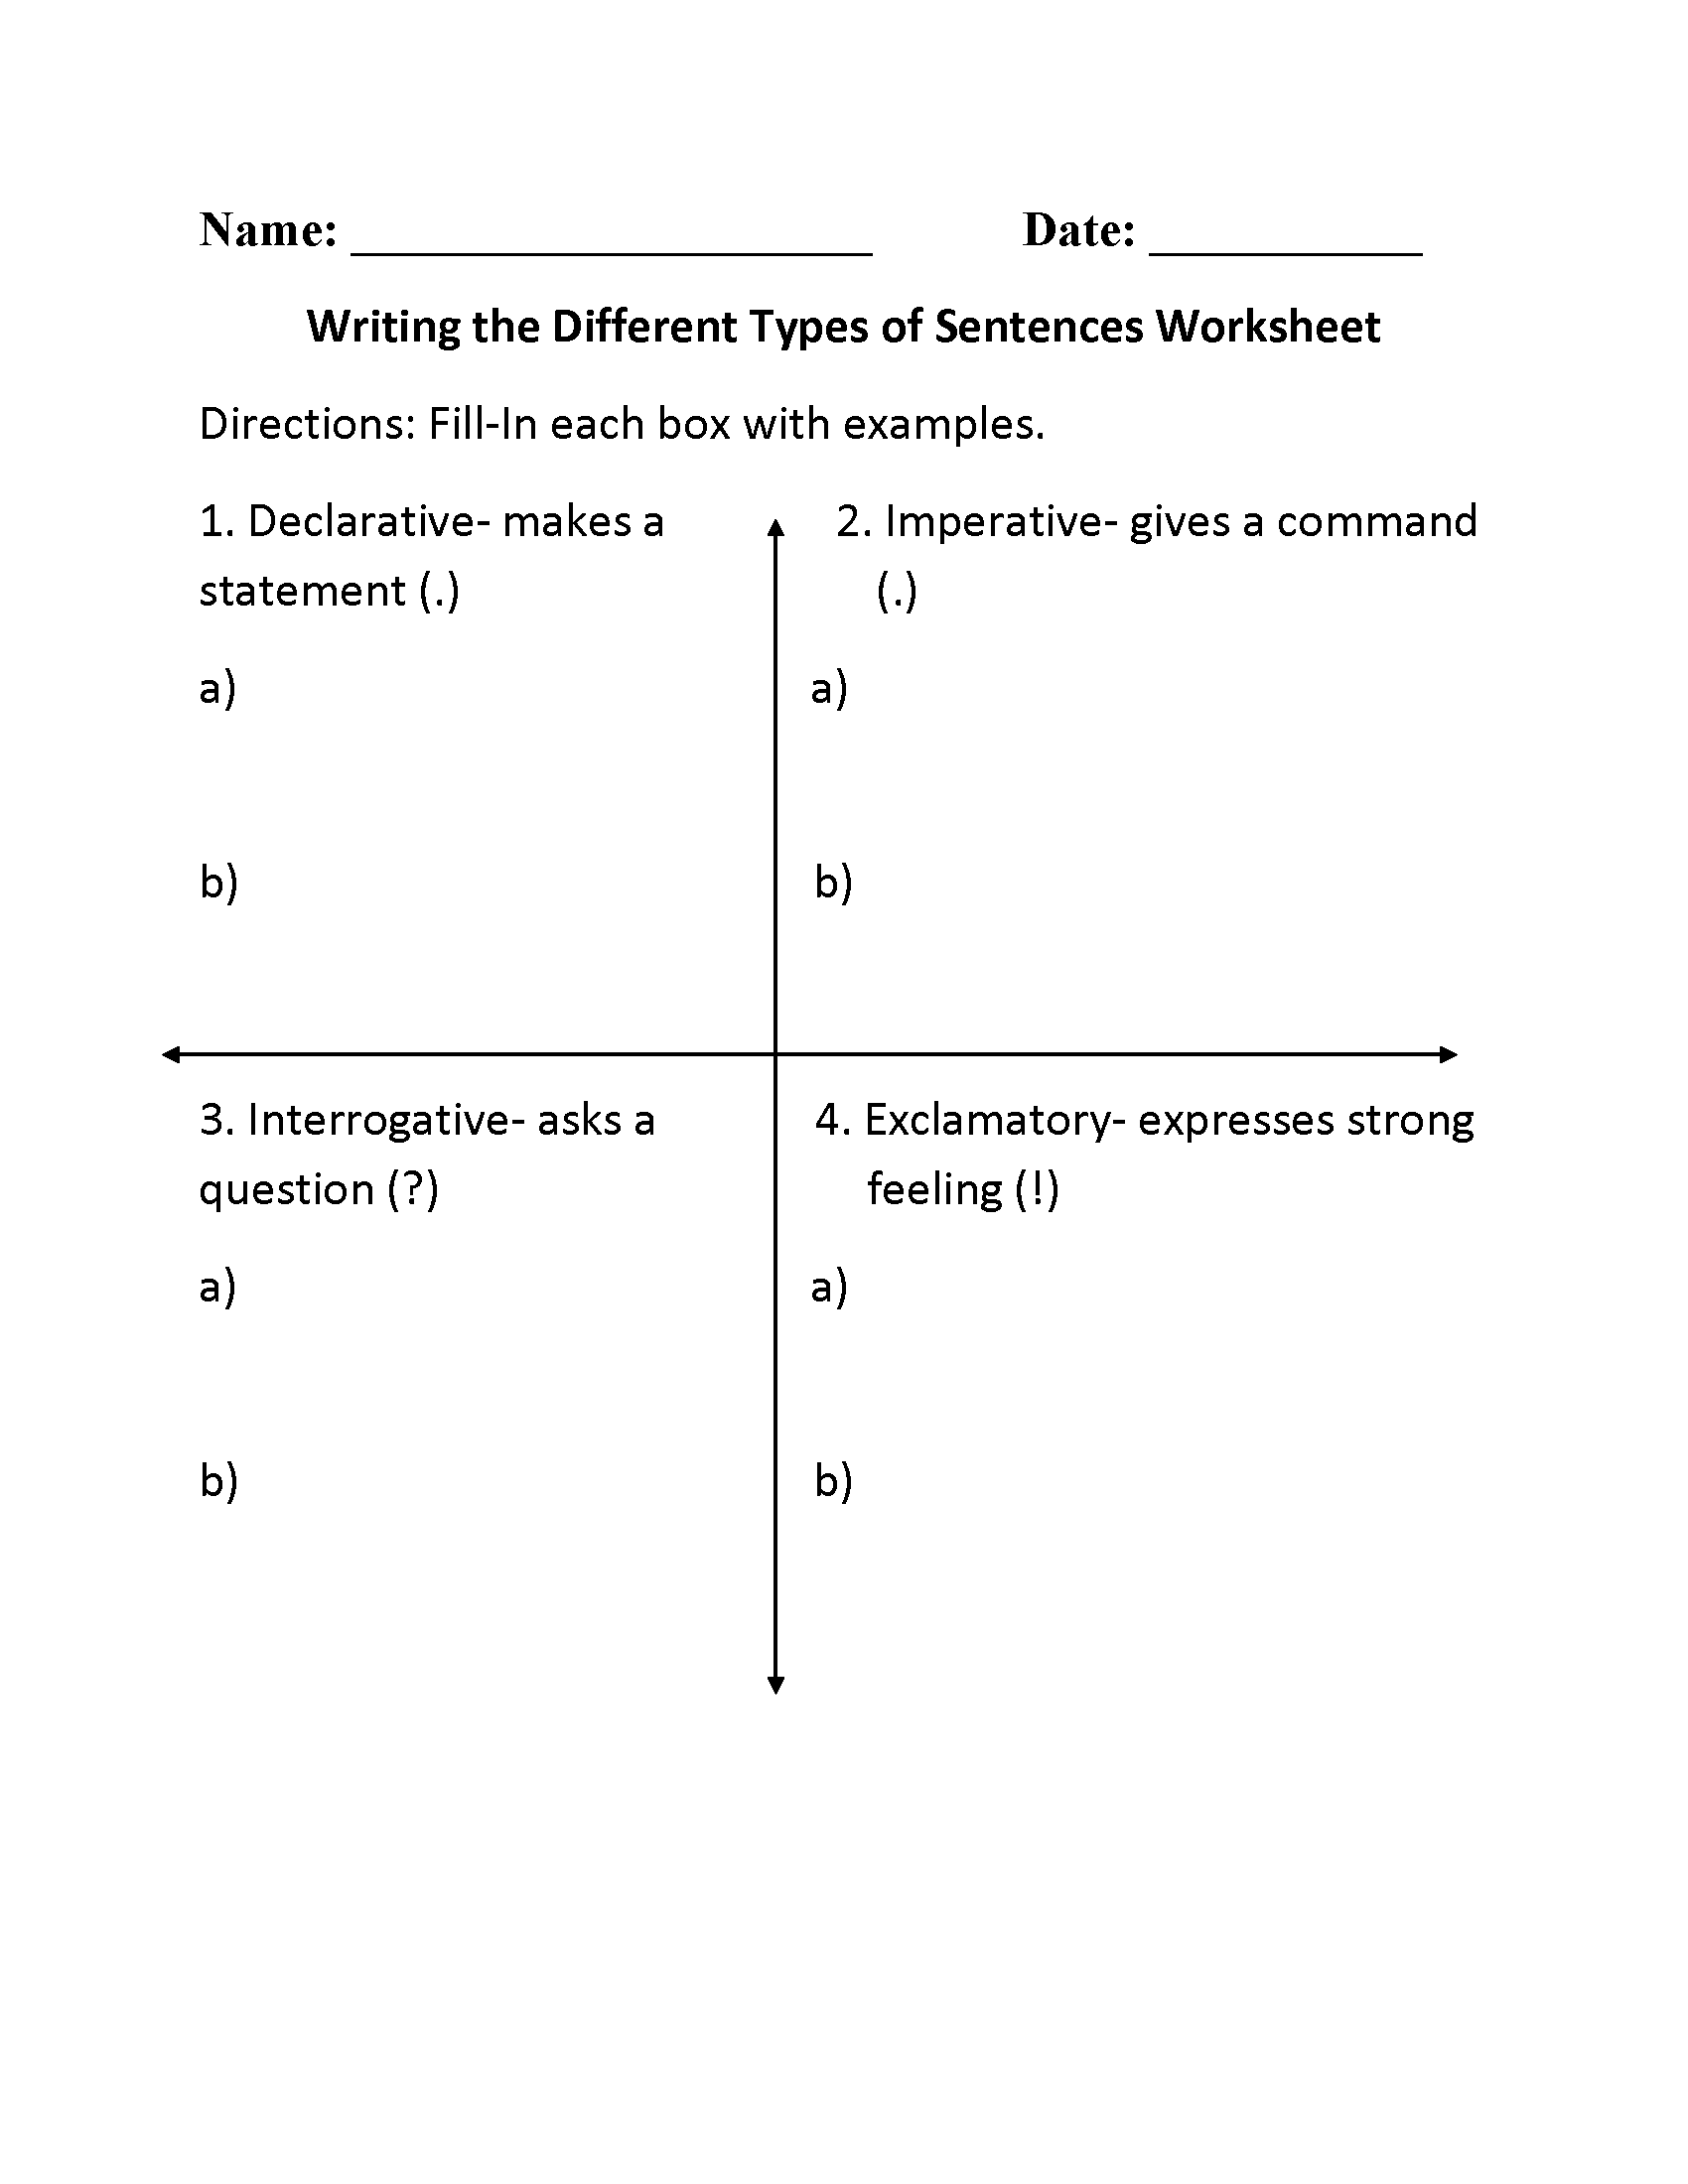 Worksheets Four Kinds Of Sentences Worksheets writing types of sentences worksheet 2nd grade ideas pinterest this is the worksheets section learning will help with there are four types